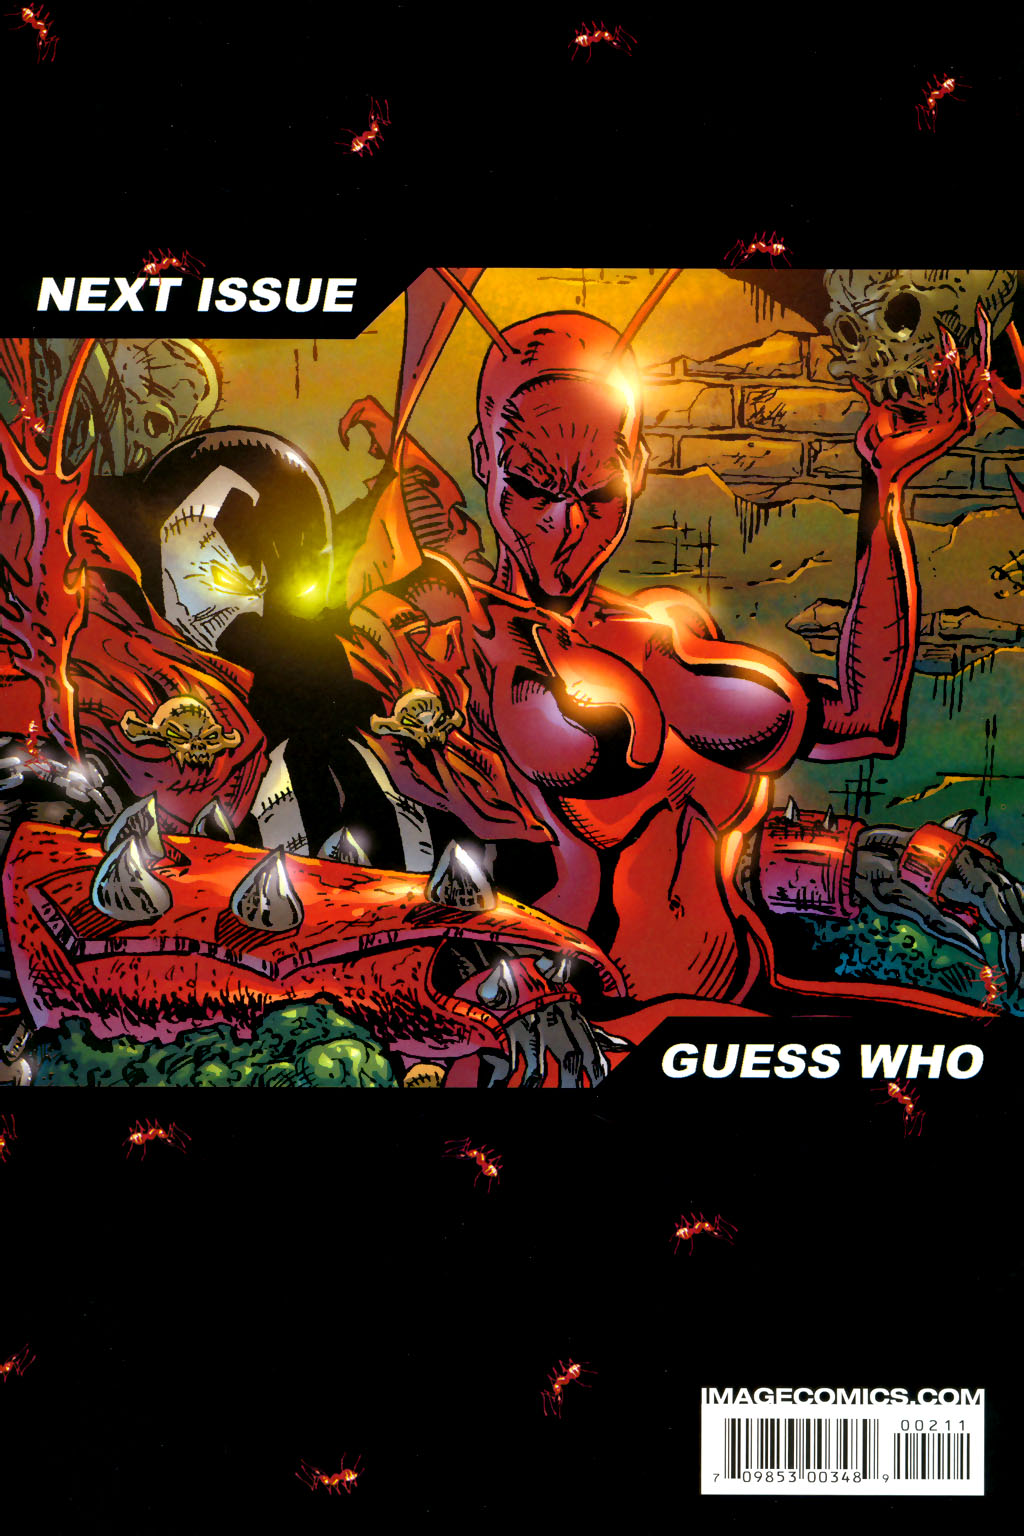 Read online Ant comic -  Issue #2 - 24